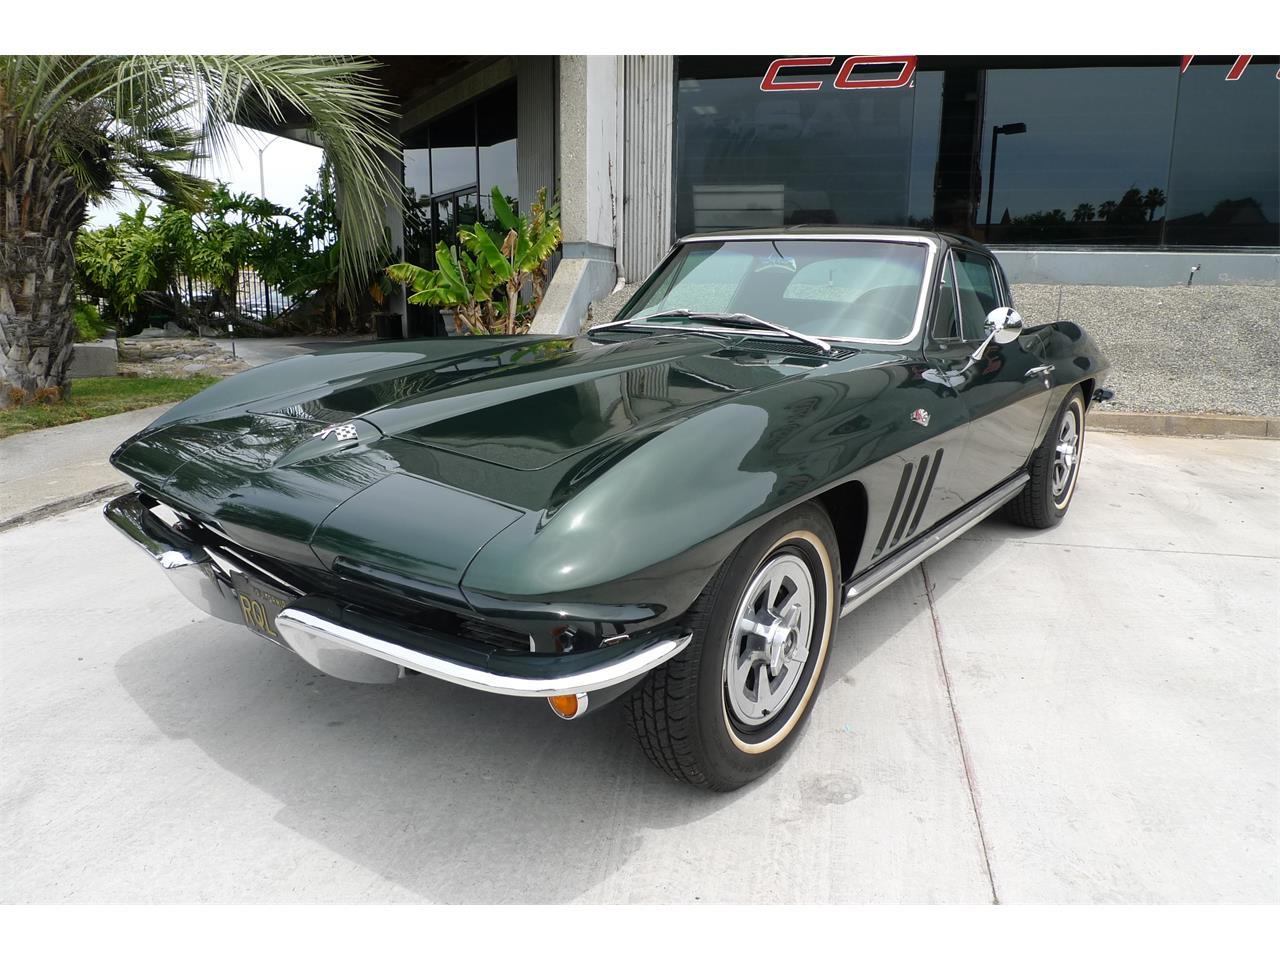 Large Picture of Classic '65 Chevrolet Corvette - $49,975.00 Offered by Coast Corvette - Q4J8